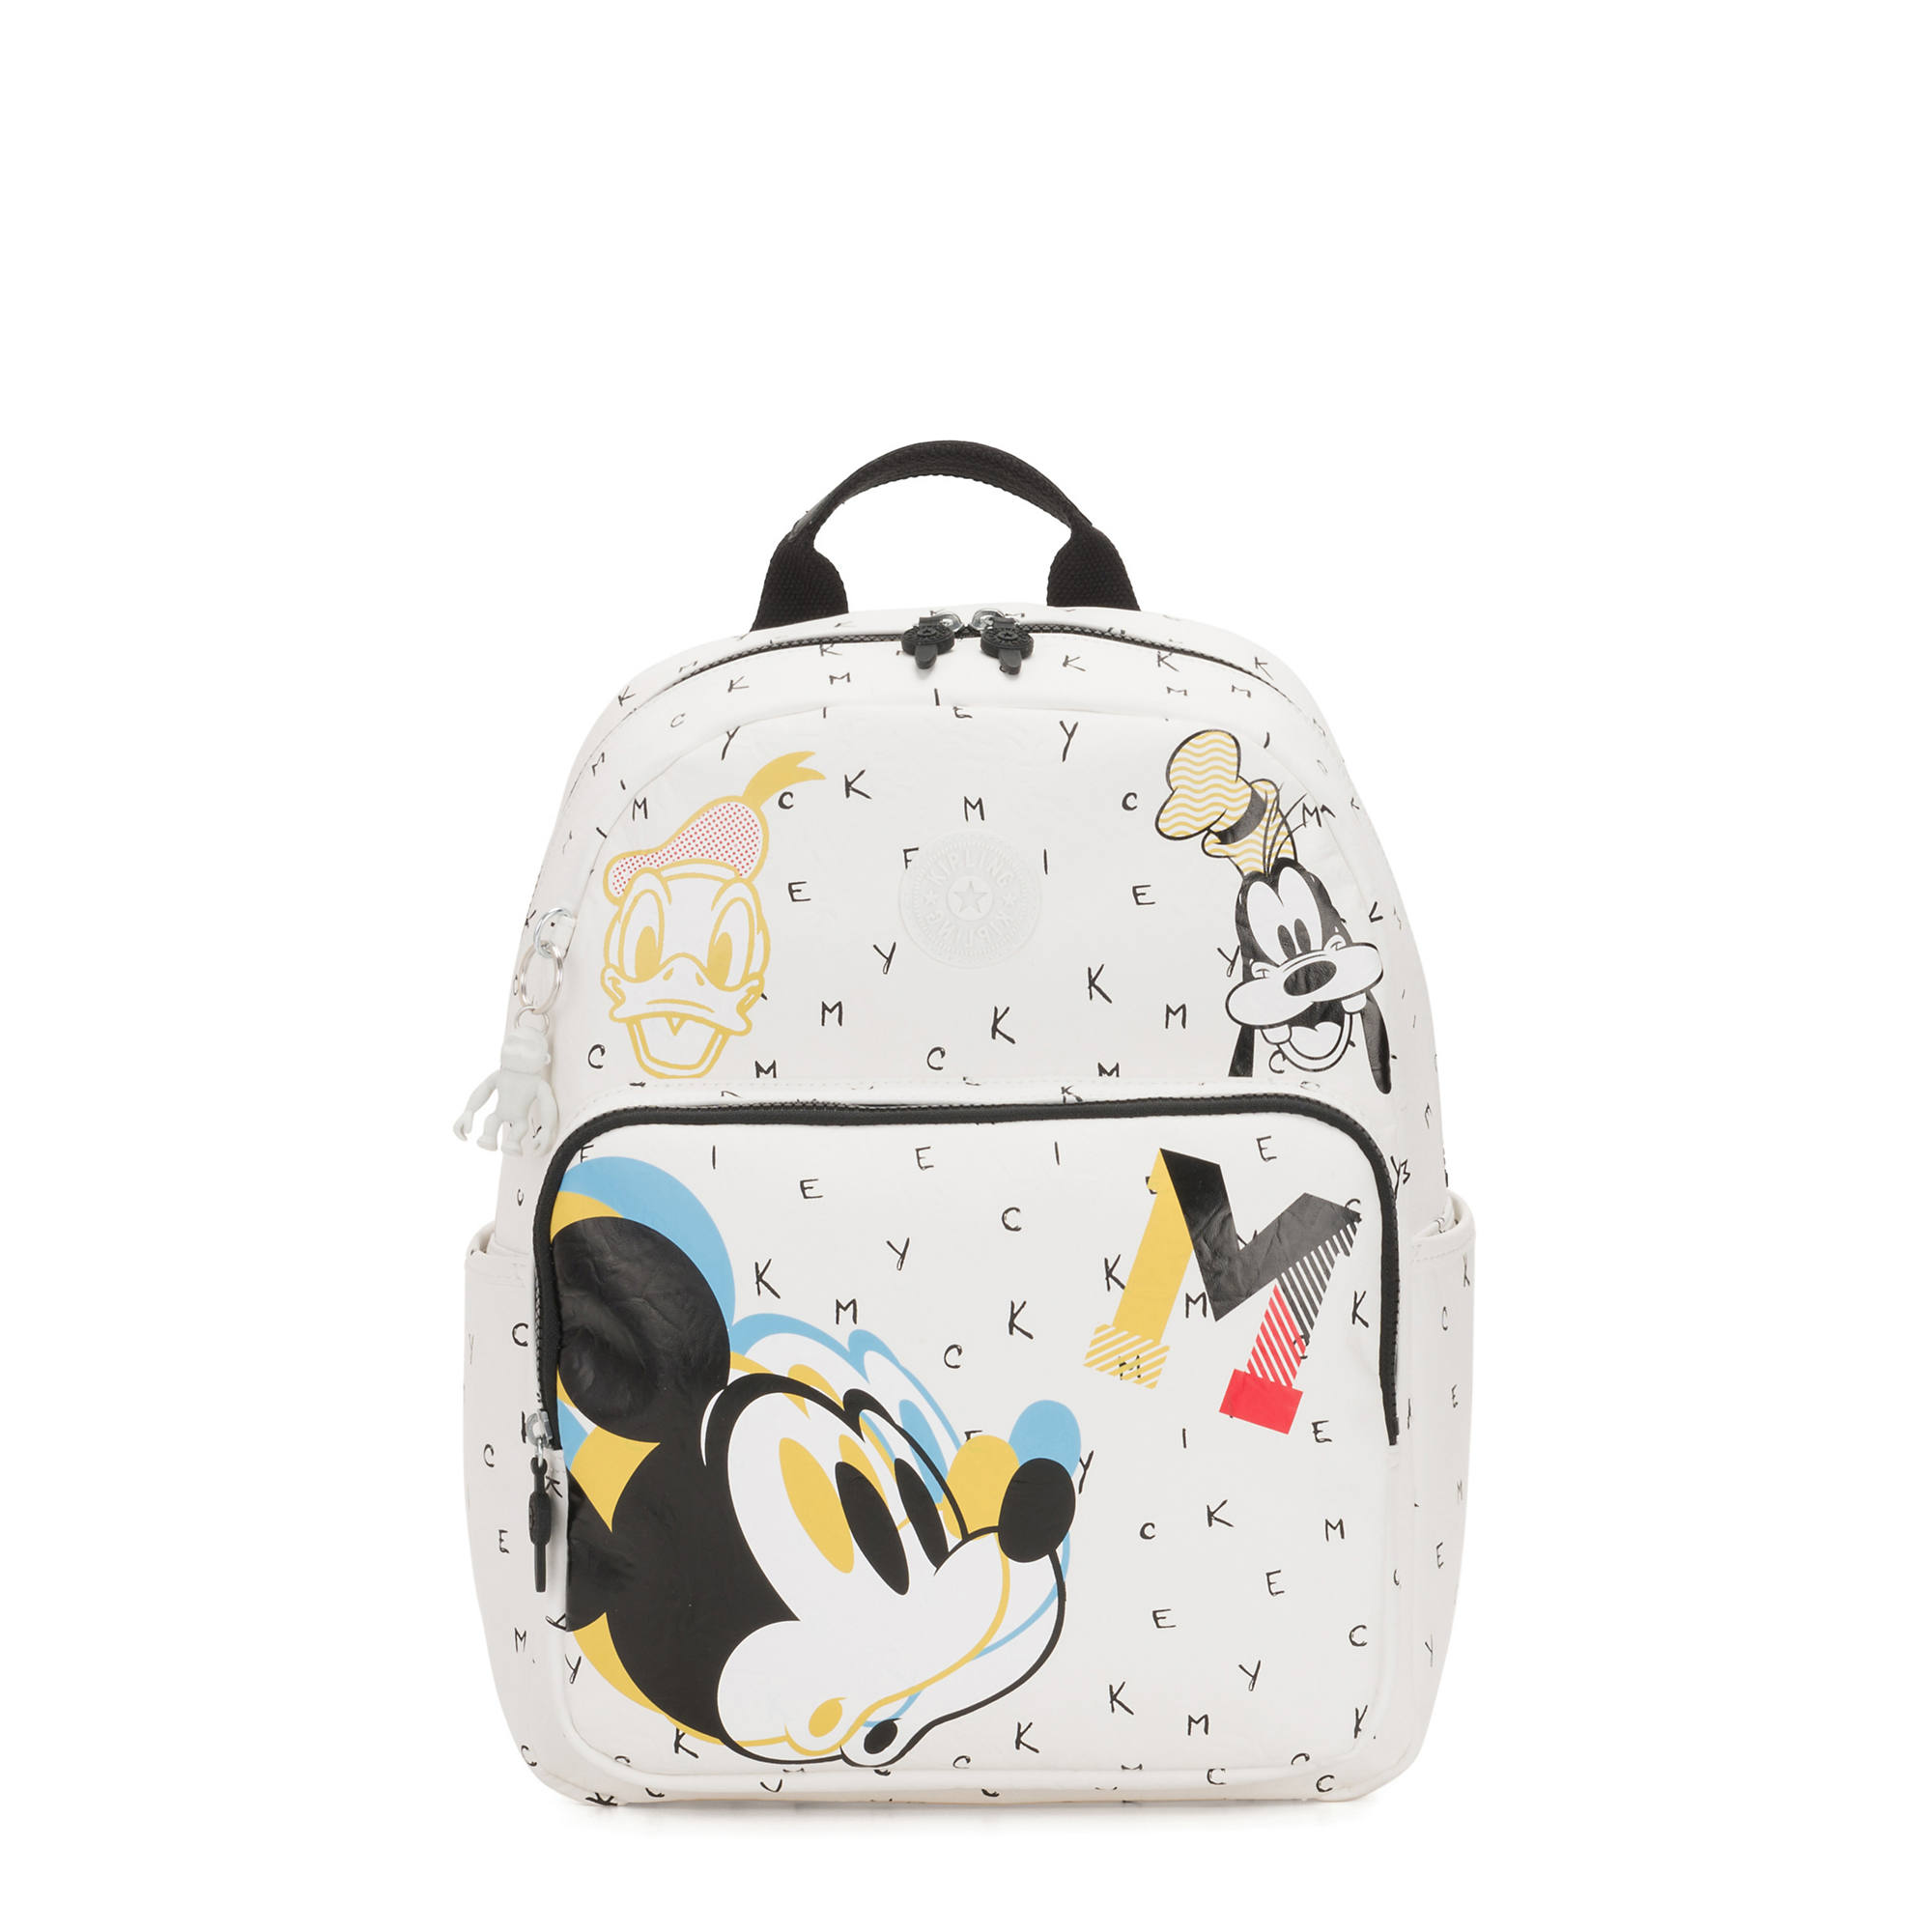 73636042dcd Disney s Minnie Mouse and Mickey Mouse Bright Backpack